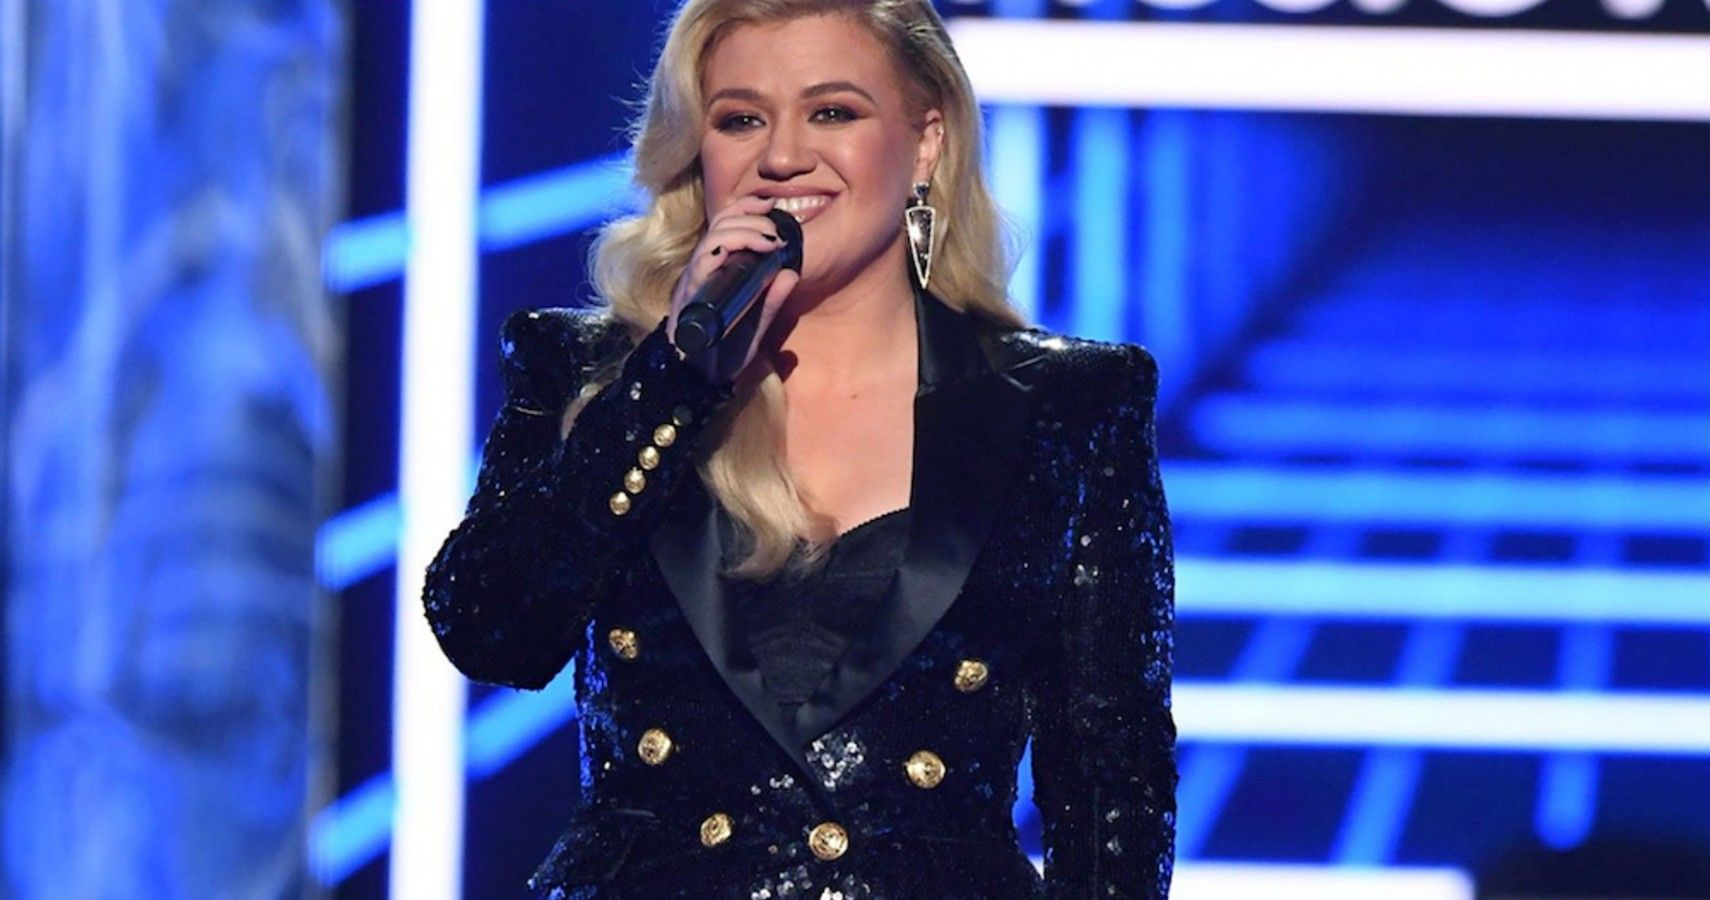 Kelly Clarkson Reveals That She Never Actually Wanted Her Job